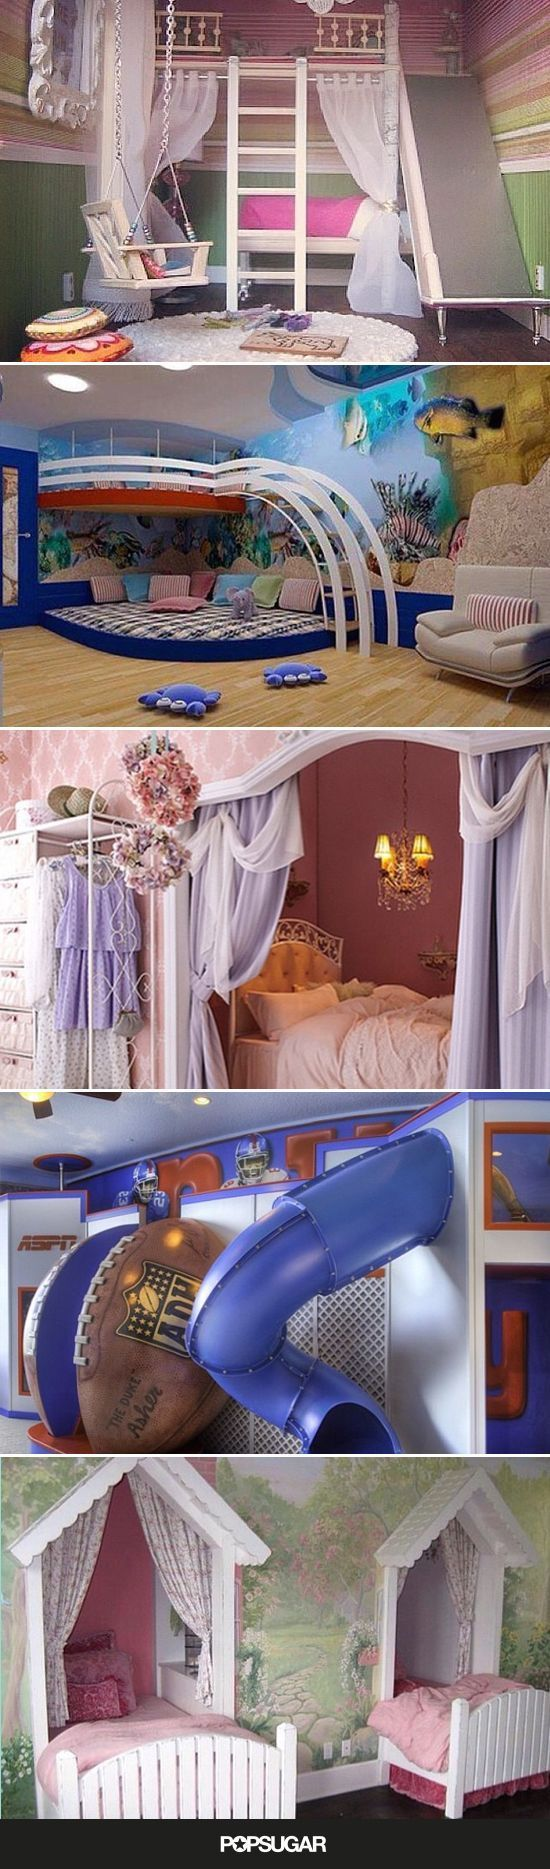 The Craziest 17 Room Decor Ideas For Kids That Will Inspire An Interior  Decorator In You! Great Pictures